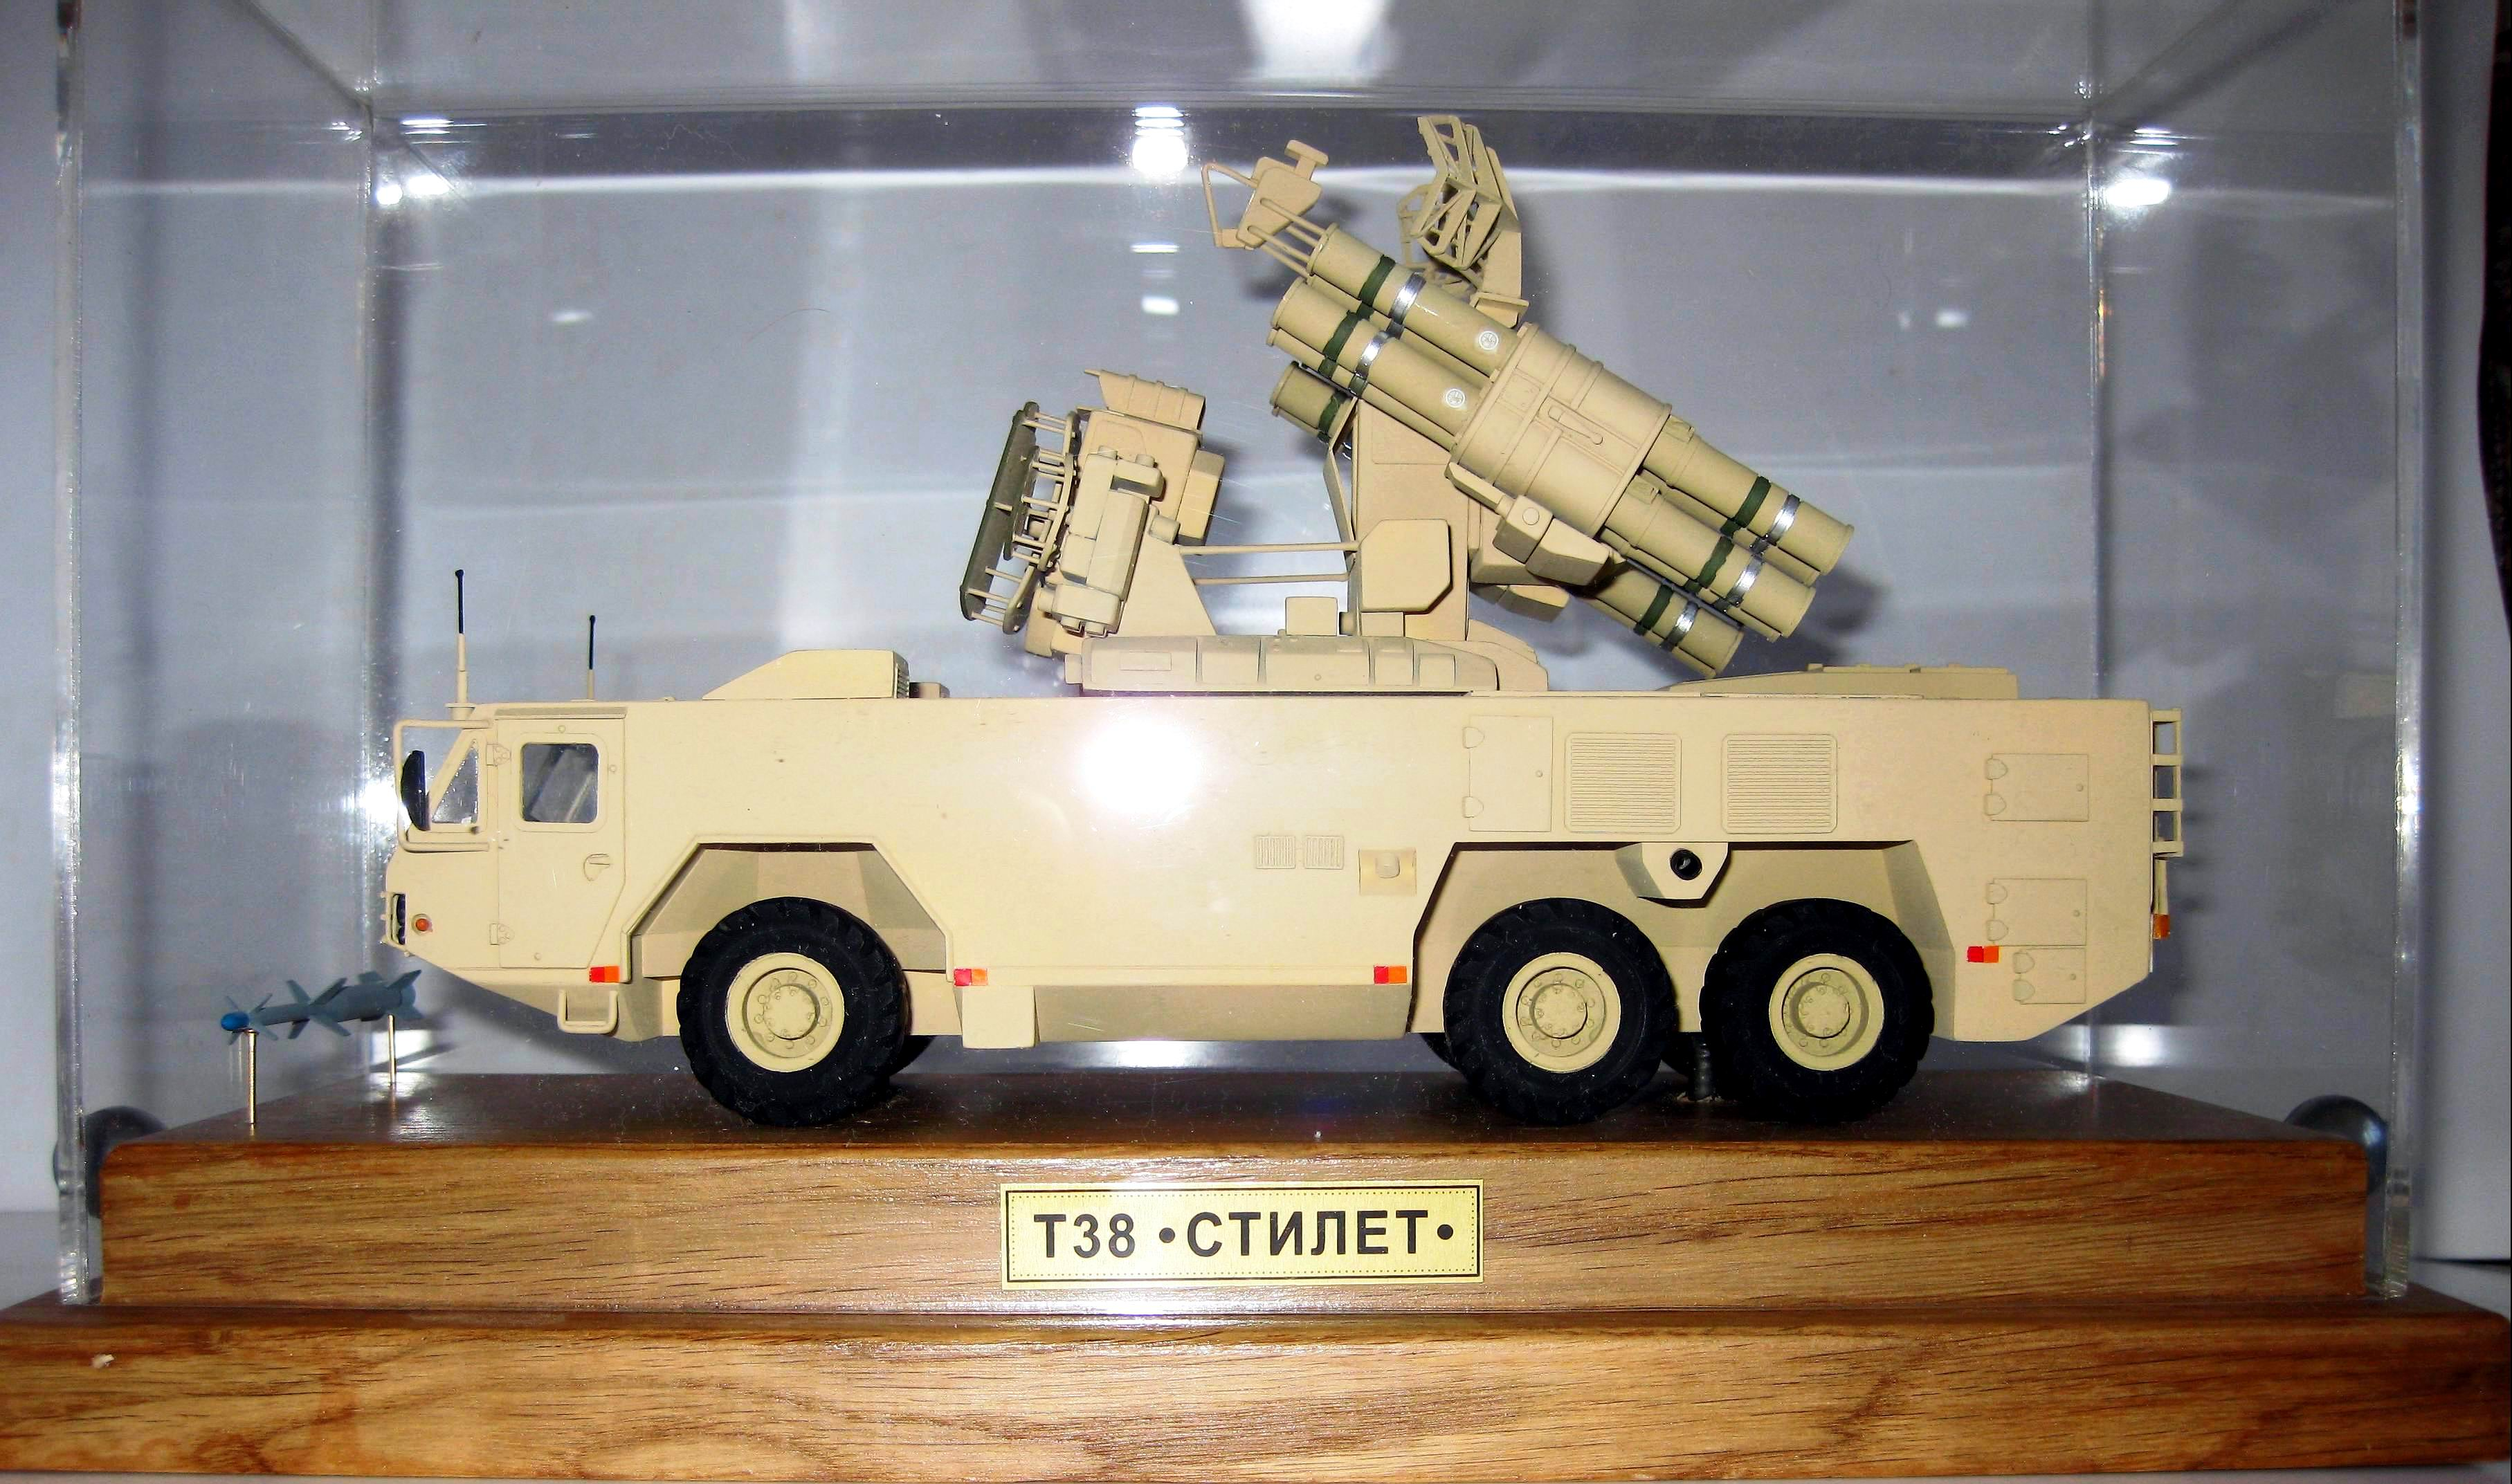 http://militaryrussia.ru/forum/download/file.php?id=16623&sid=d77a3d4f7497e3ee79ccce6497a69f31&mode=view